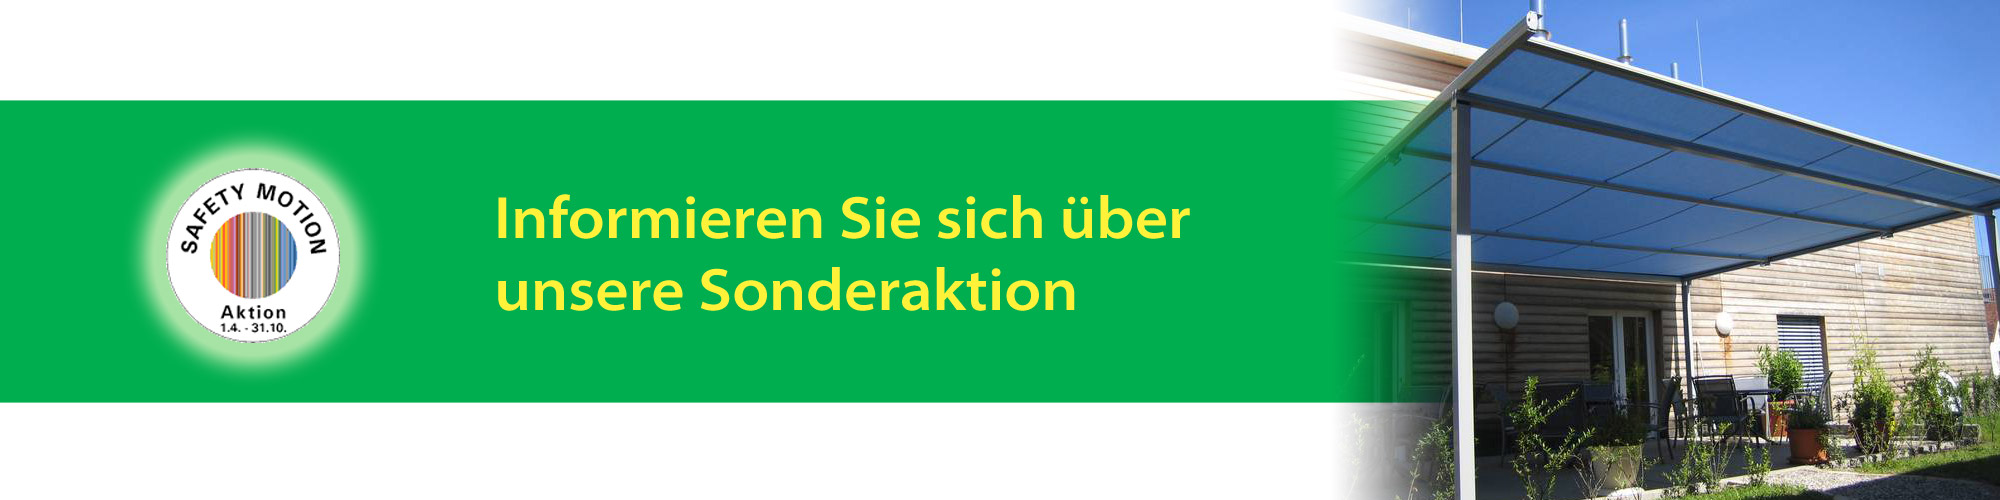 Sonflie-04-Sonderaktionen-Safety-Motion